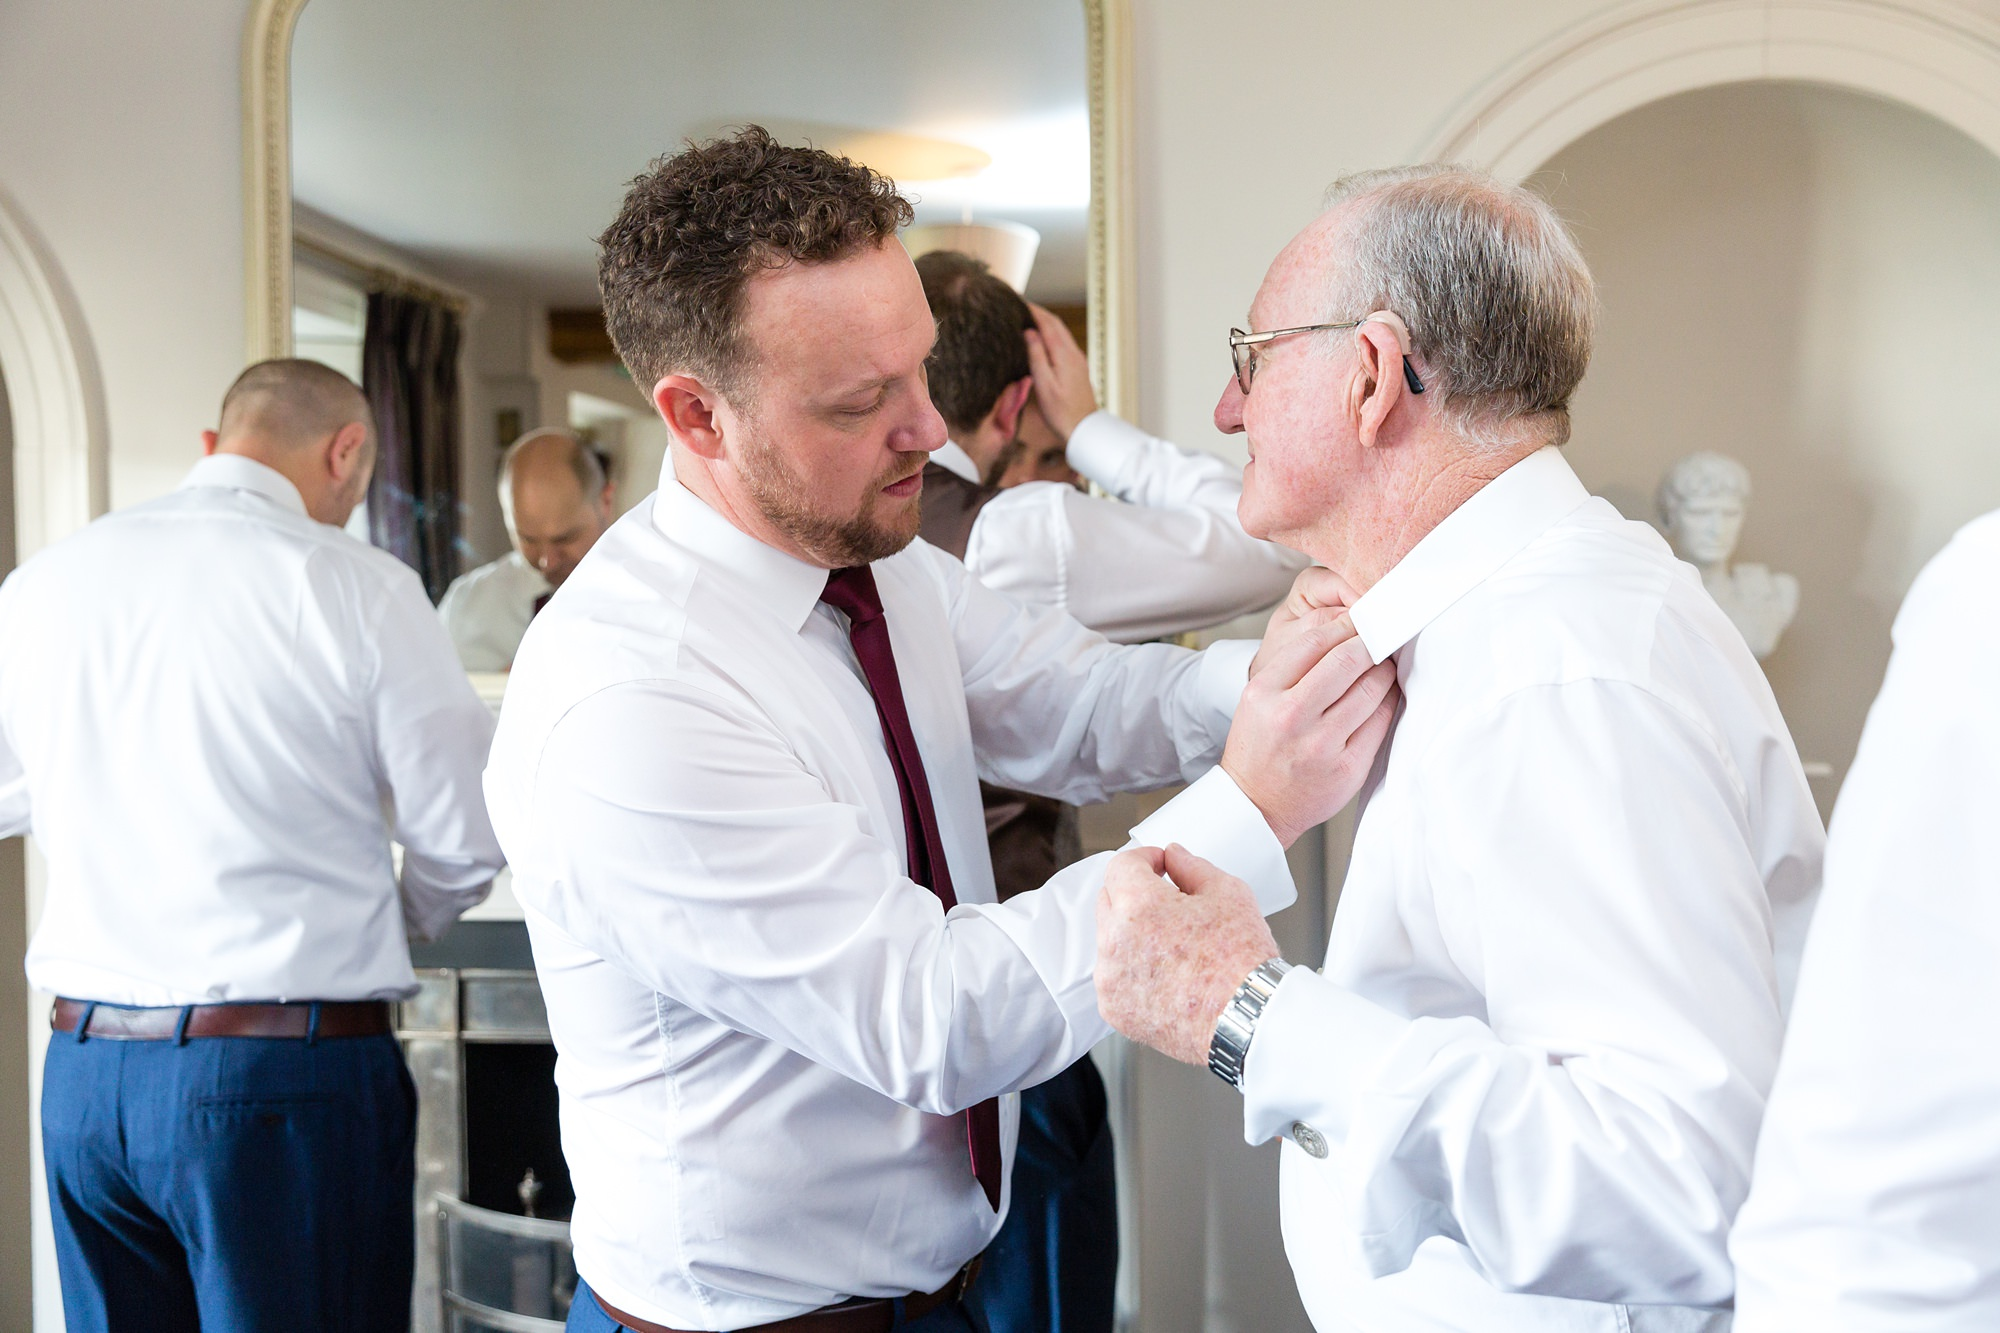 Groom helps his dad with buttonhole